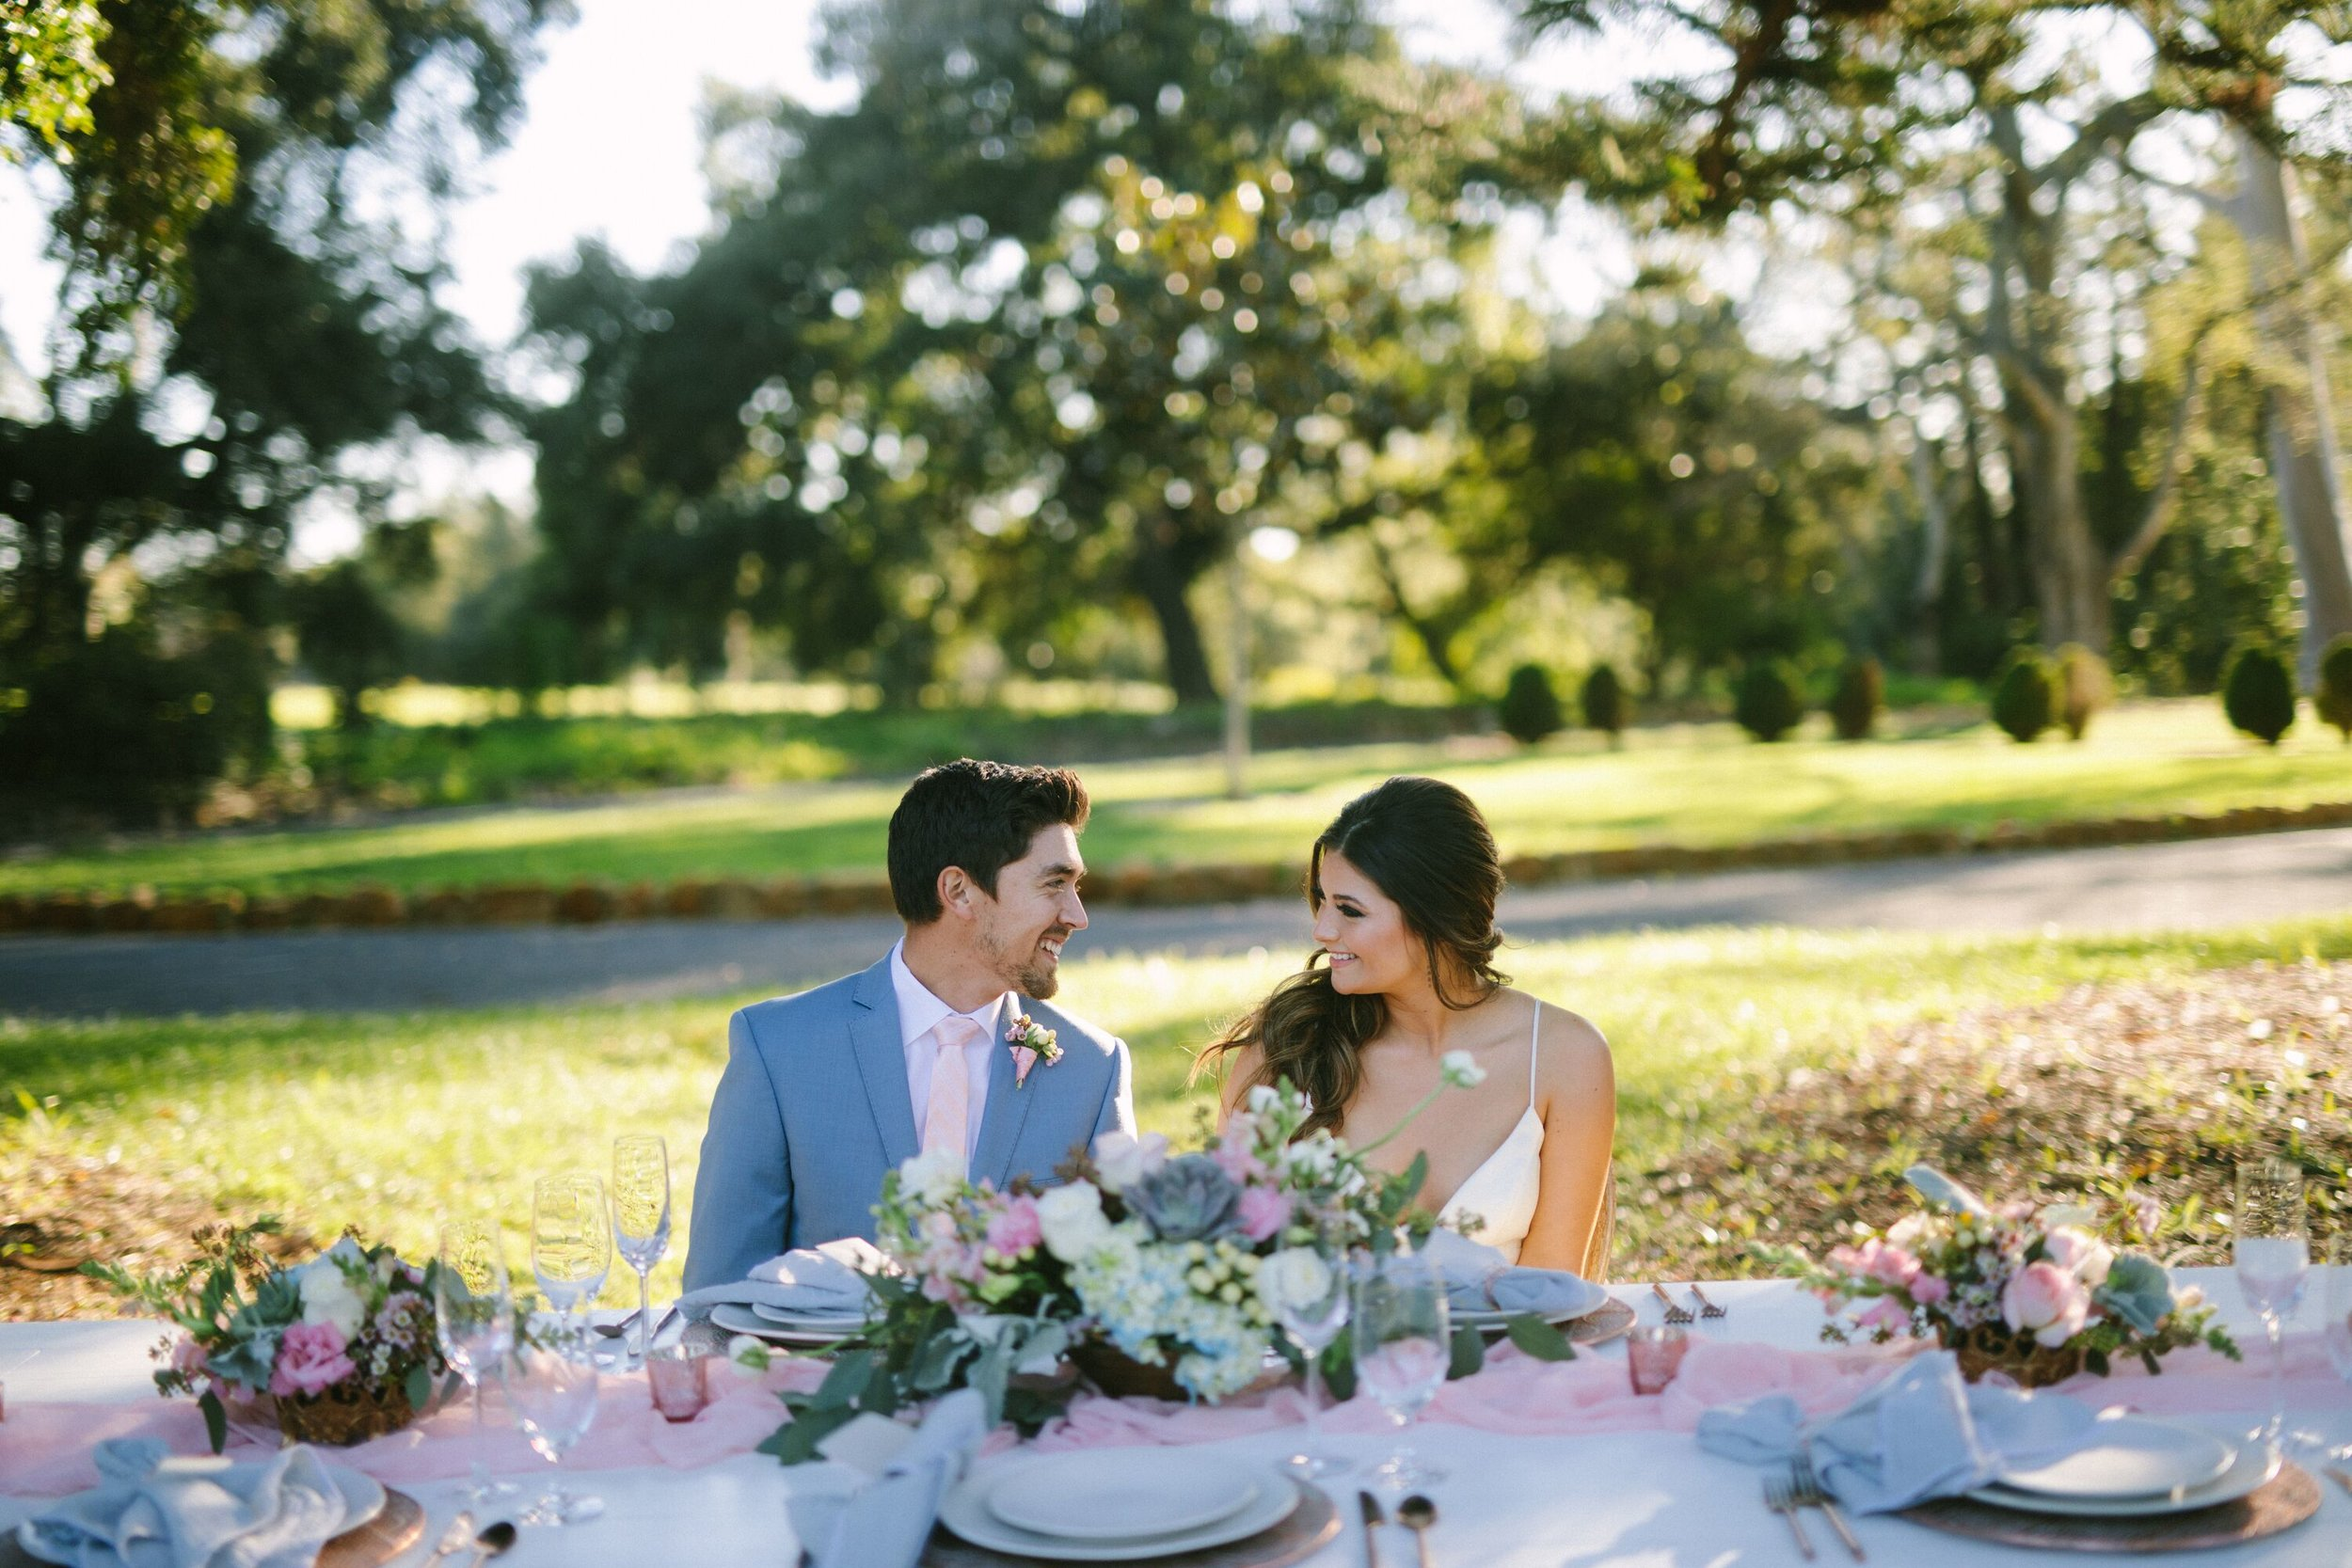 www.santabarbarawedding.com | Photographer: Patrick Ang | Venue: Rancho La Patera & Stow House | Wedding Planner: Elyse Rowen of Elyse Events | Bride and Groom at Table